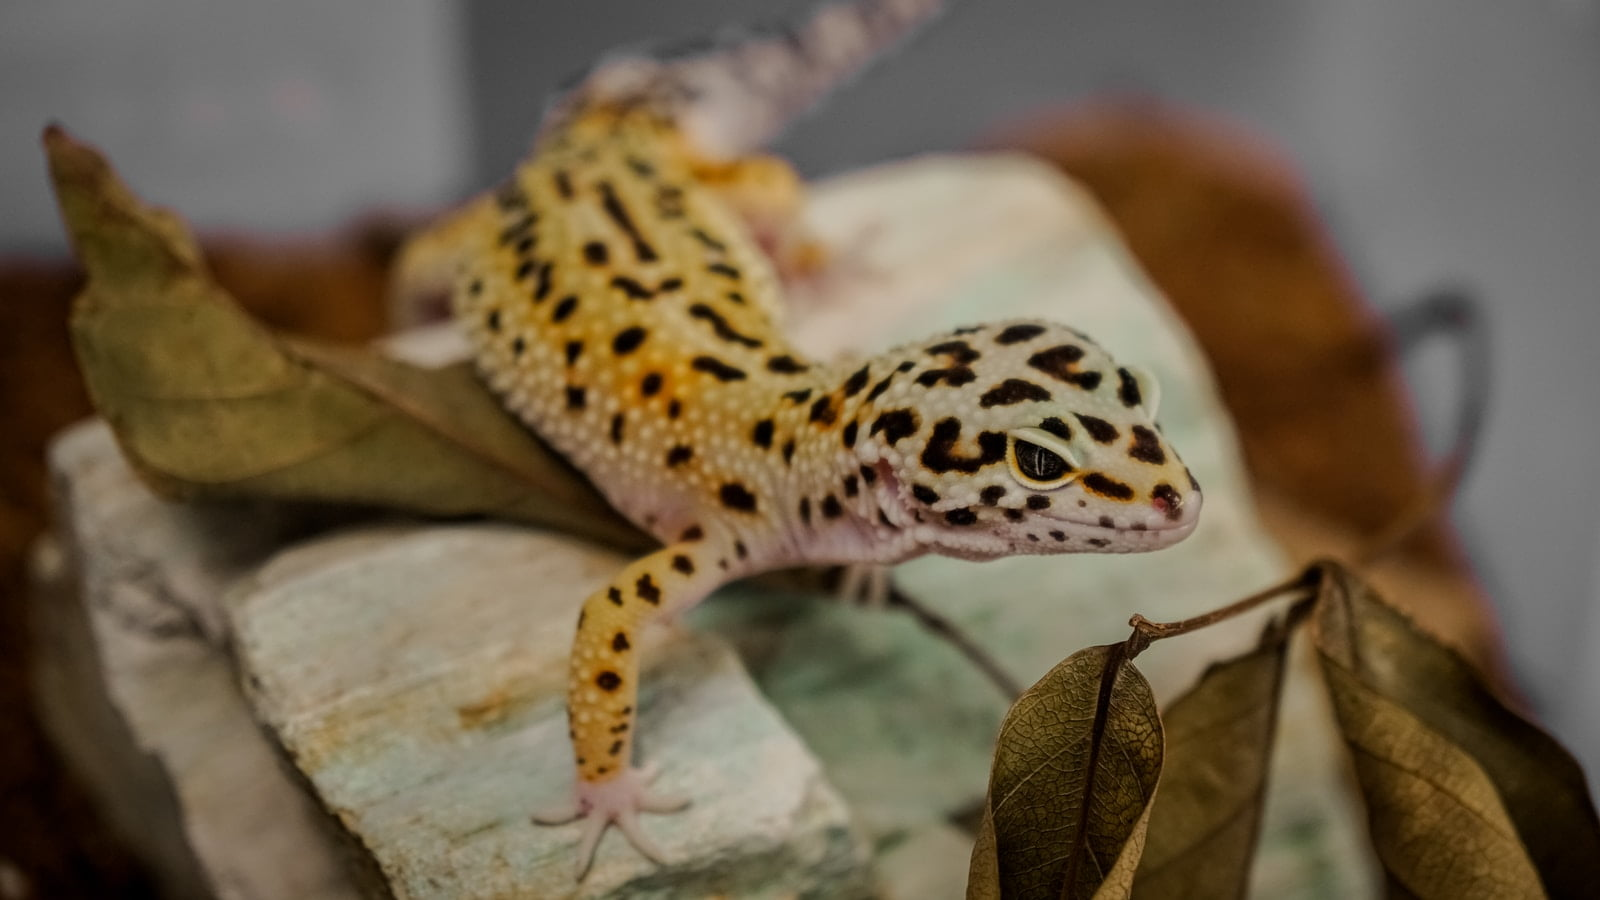 brown and white lizard on brown wood